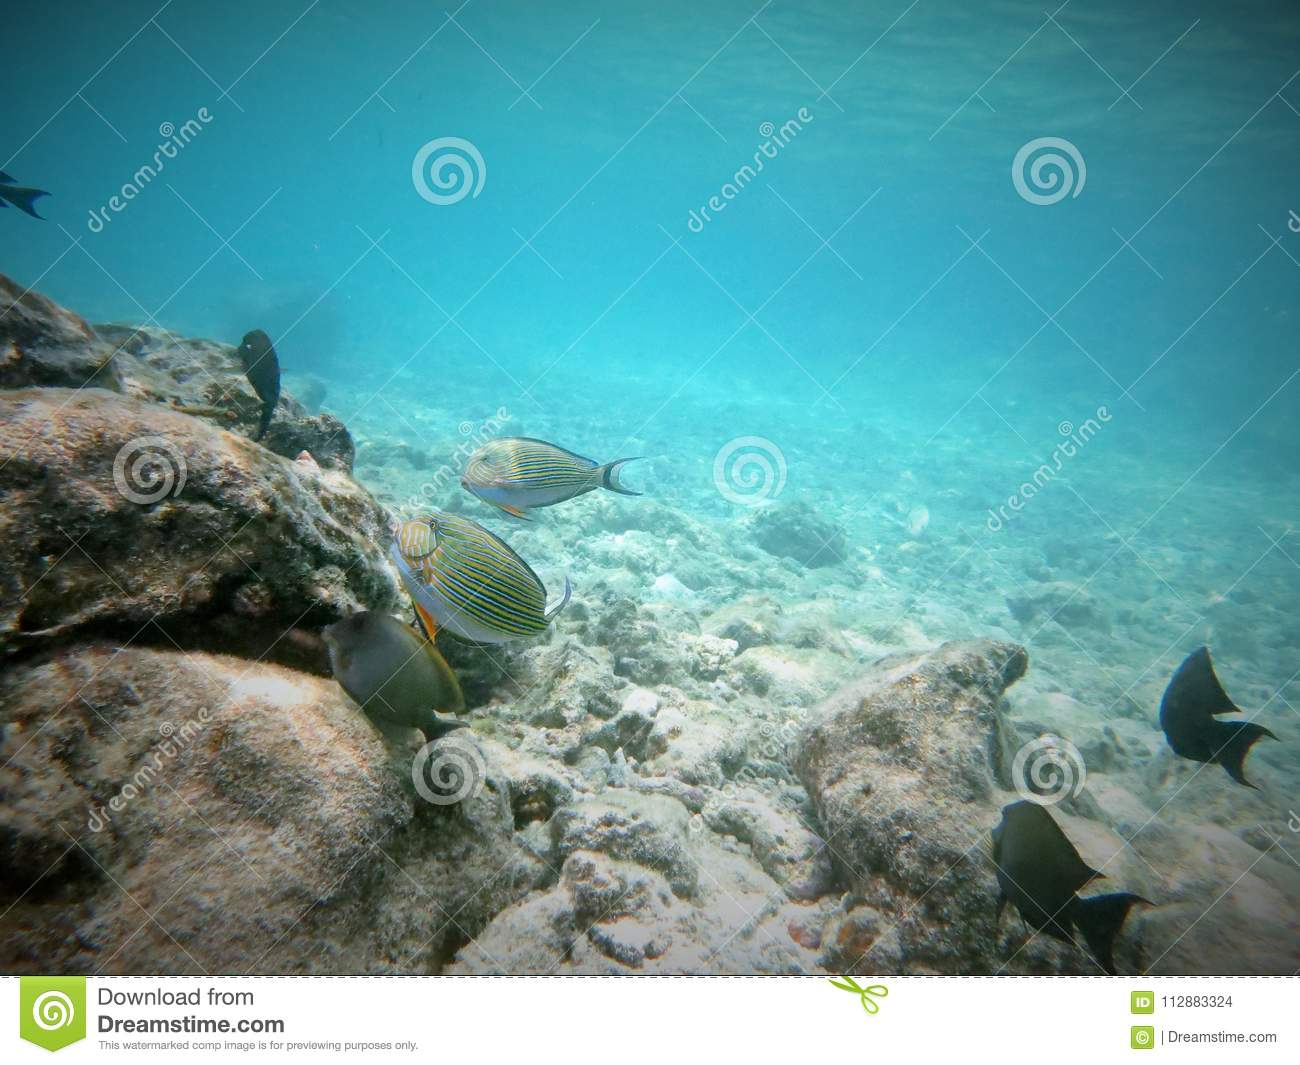 Real underwater world Beautiful Mermaid Scuba Diving In Maldives Had Lot Of Fun Its Real Nice To See Underwater World With Own Eye Daily Mail Scuba Diving In Maldives Stock Photo Image Of Natural 112883324